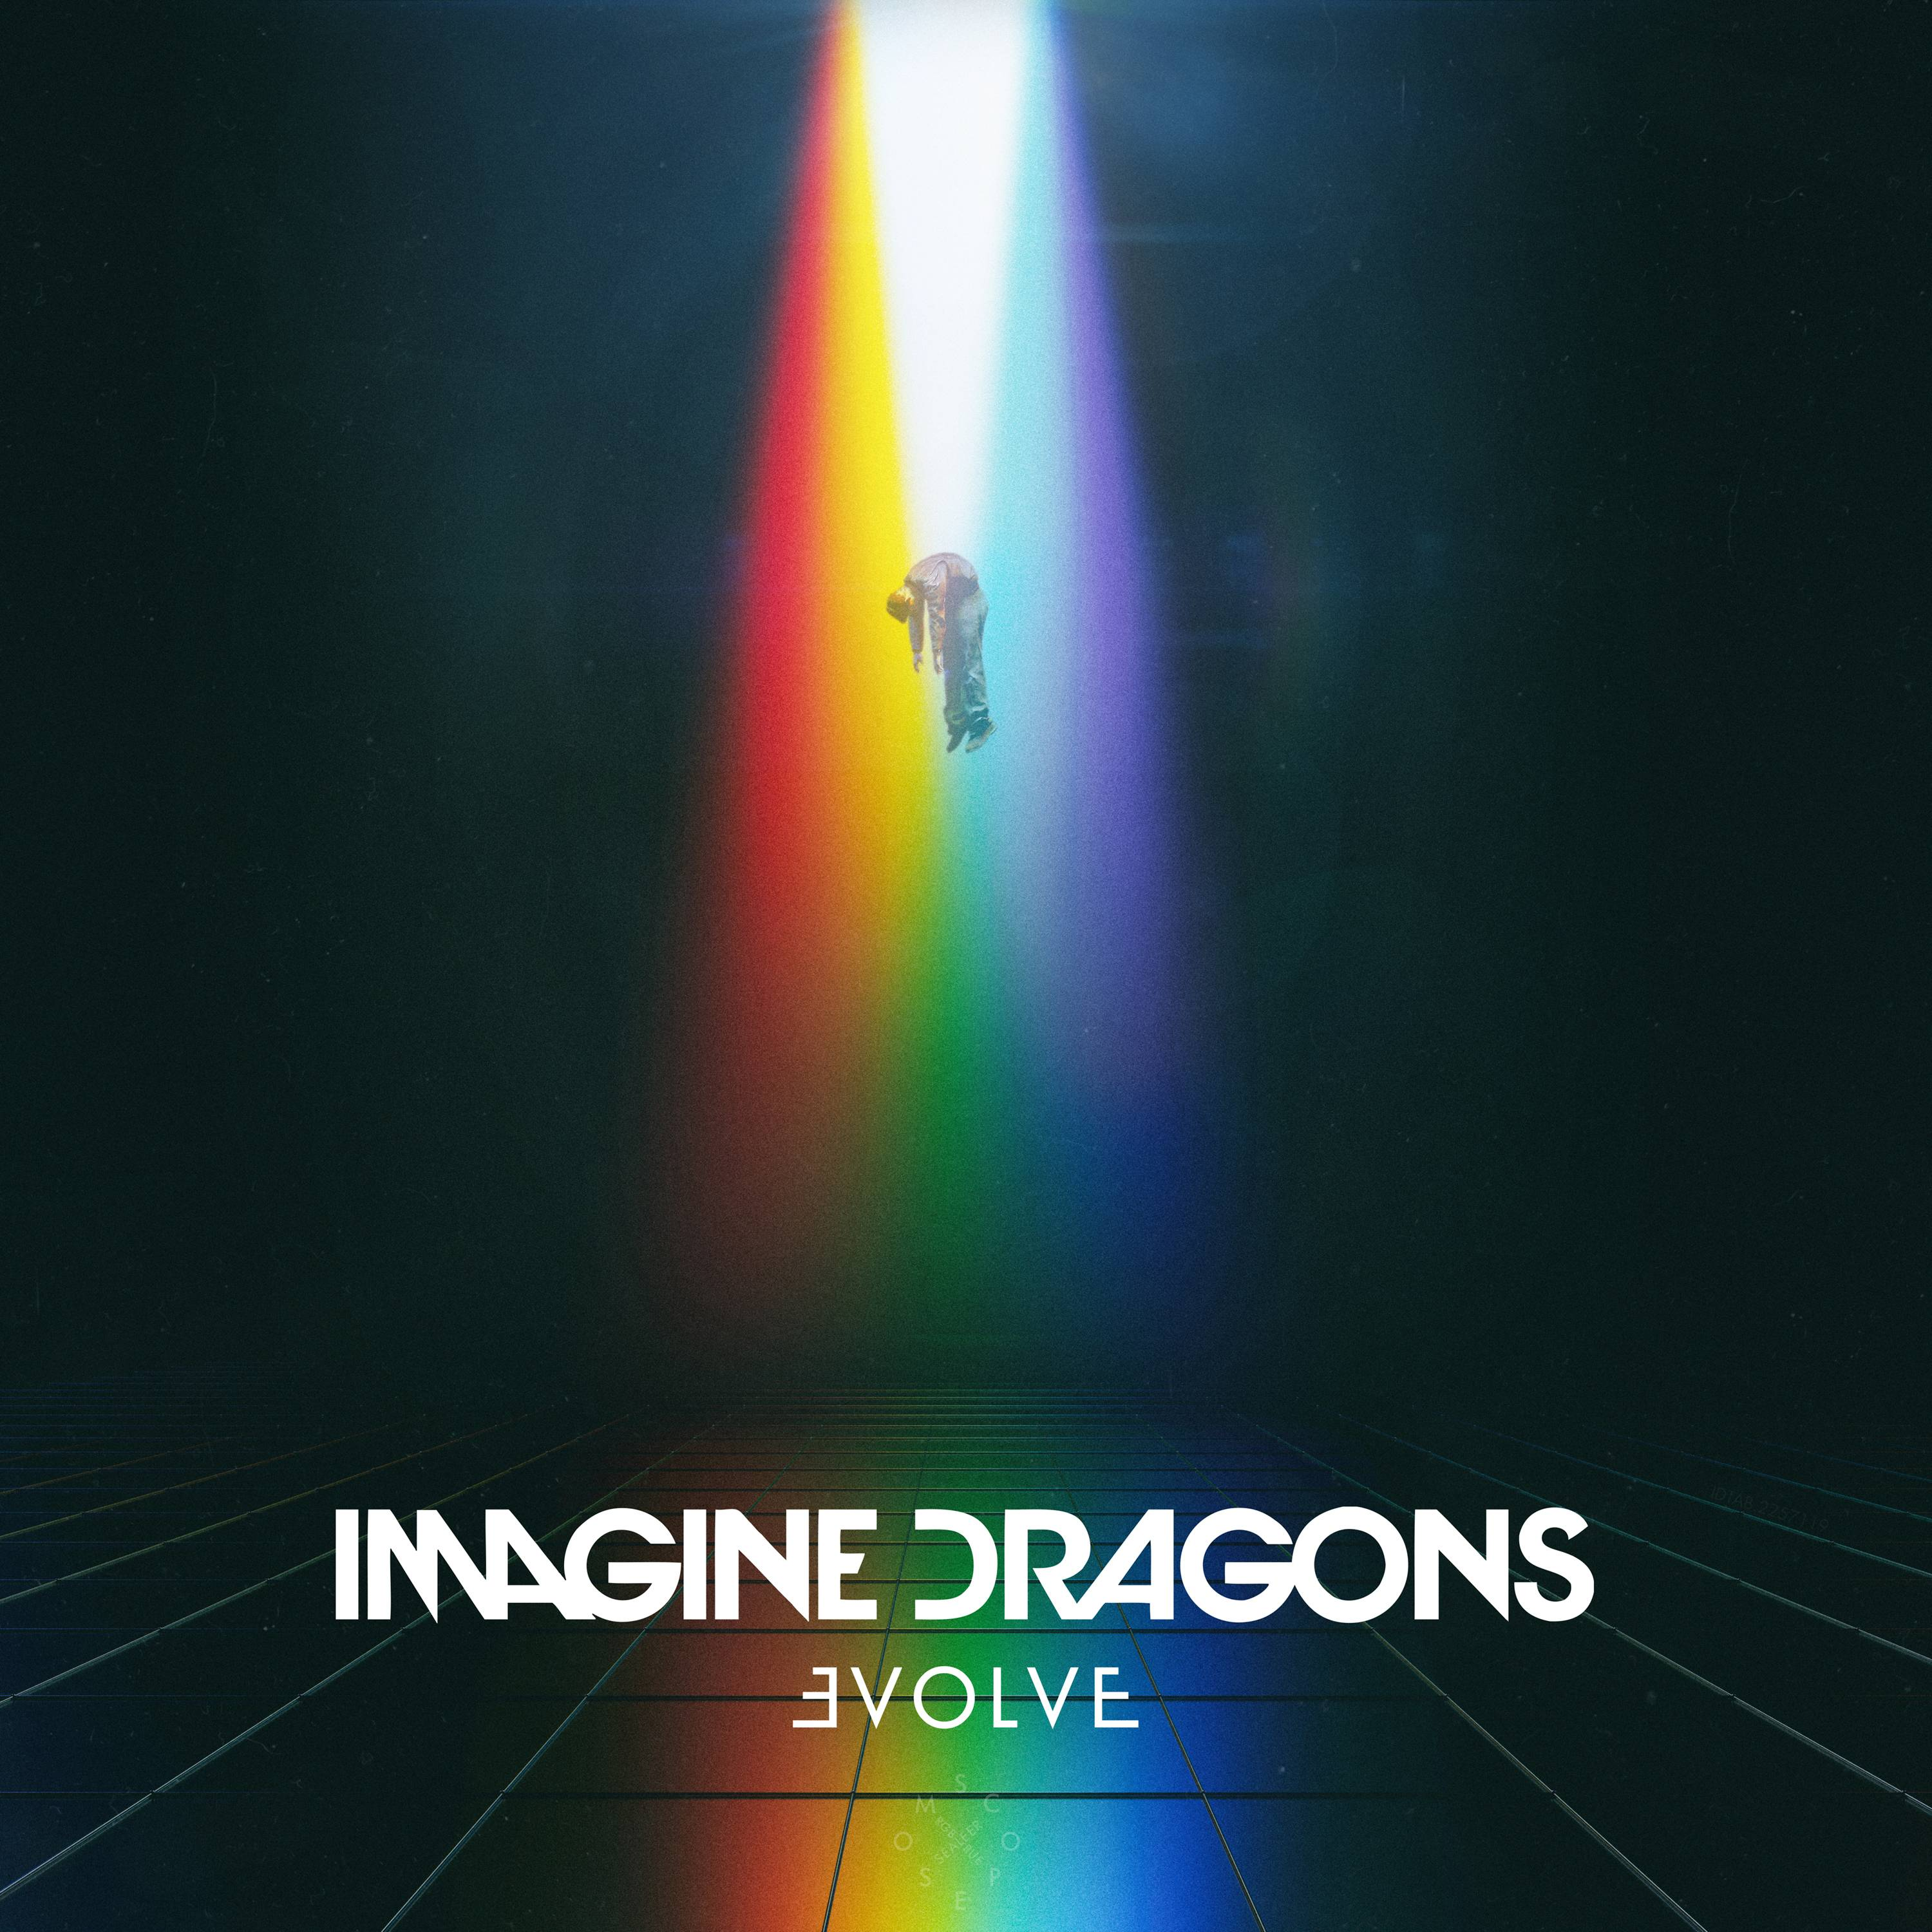 evolve imagine dragons